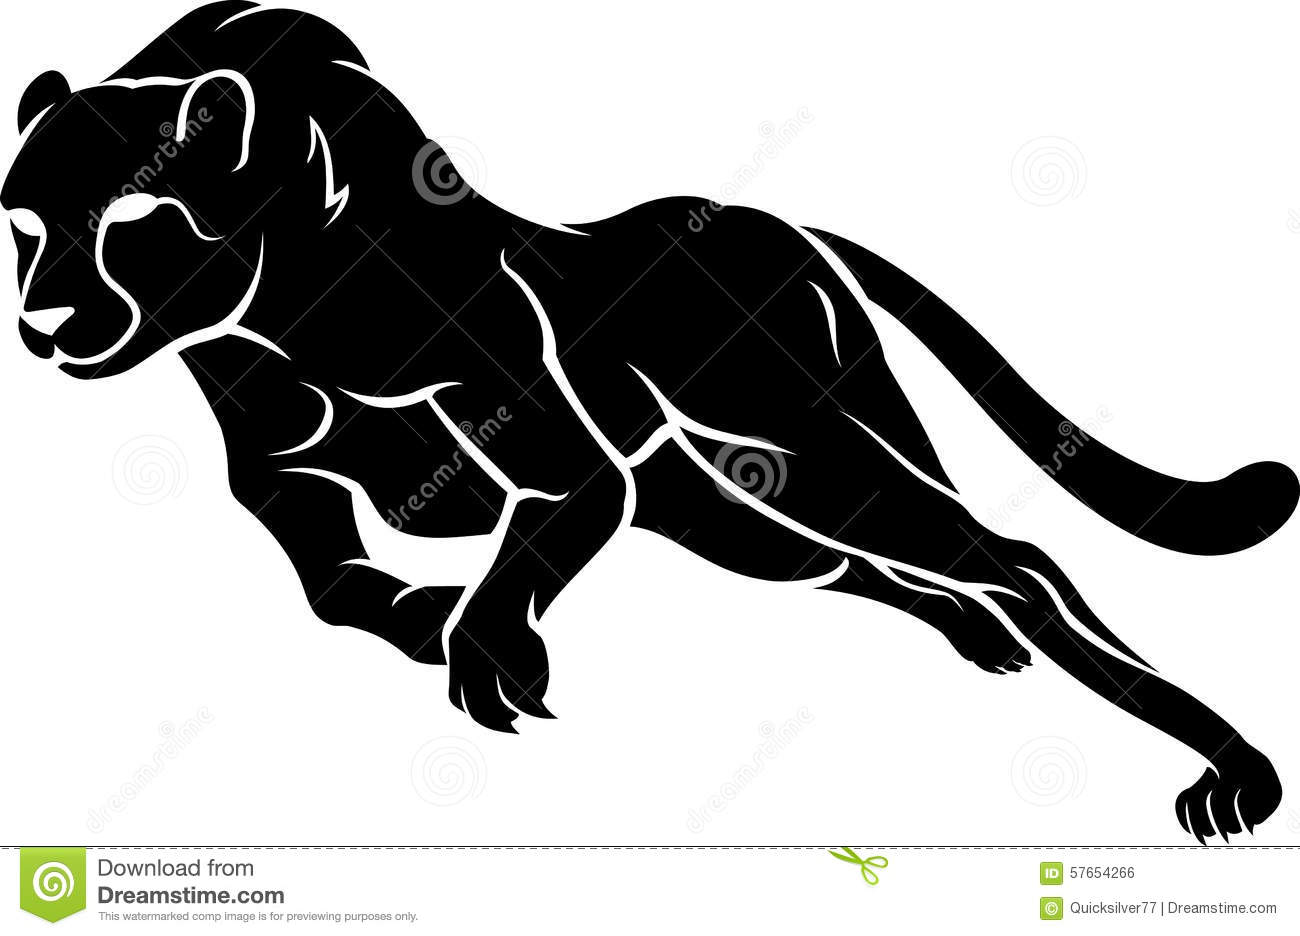 Fast Cheetah Run Silhouette Stock Vector - Image: 57654266